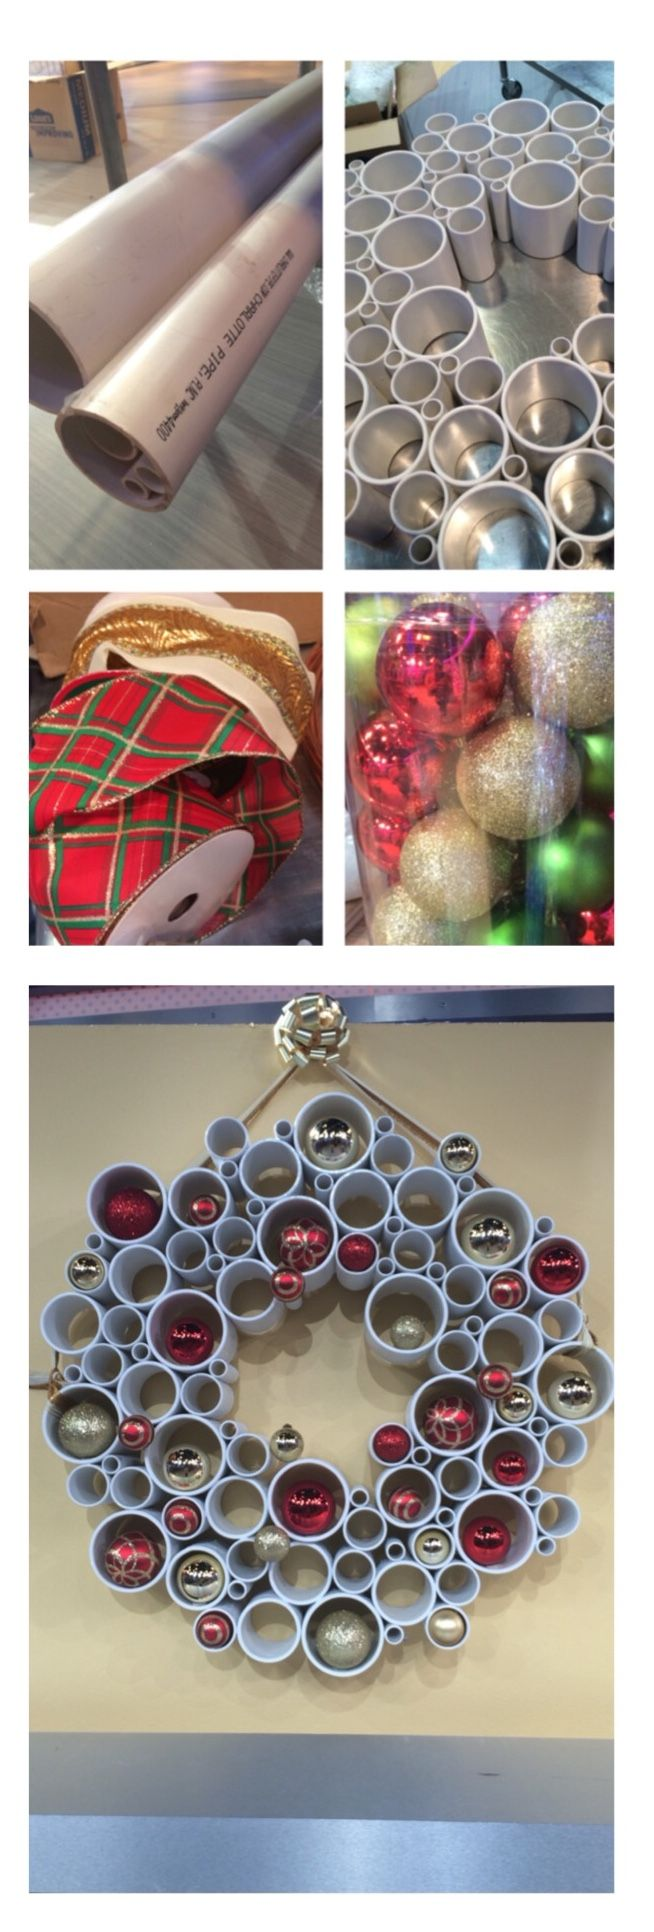 A wreath made out of PVC pipe - how modern, and inexpensive!  Sabrina Soto's step by step directions are here: http://abcn.ws/1scnsf2